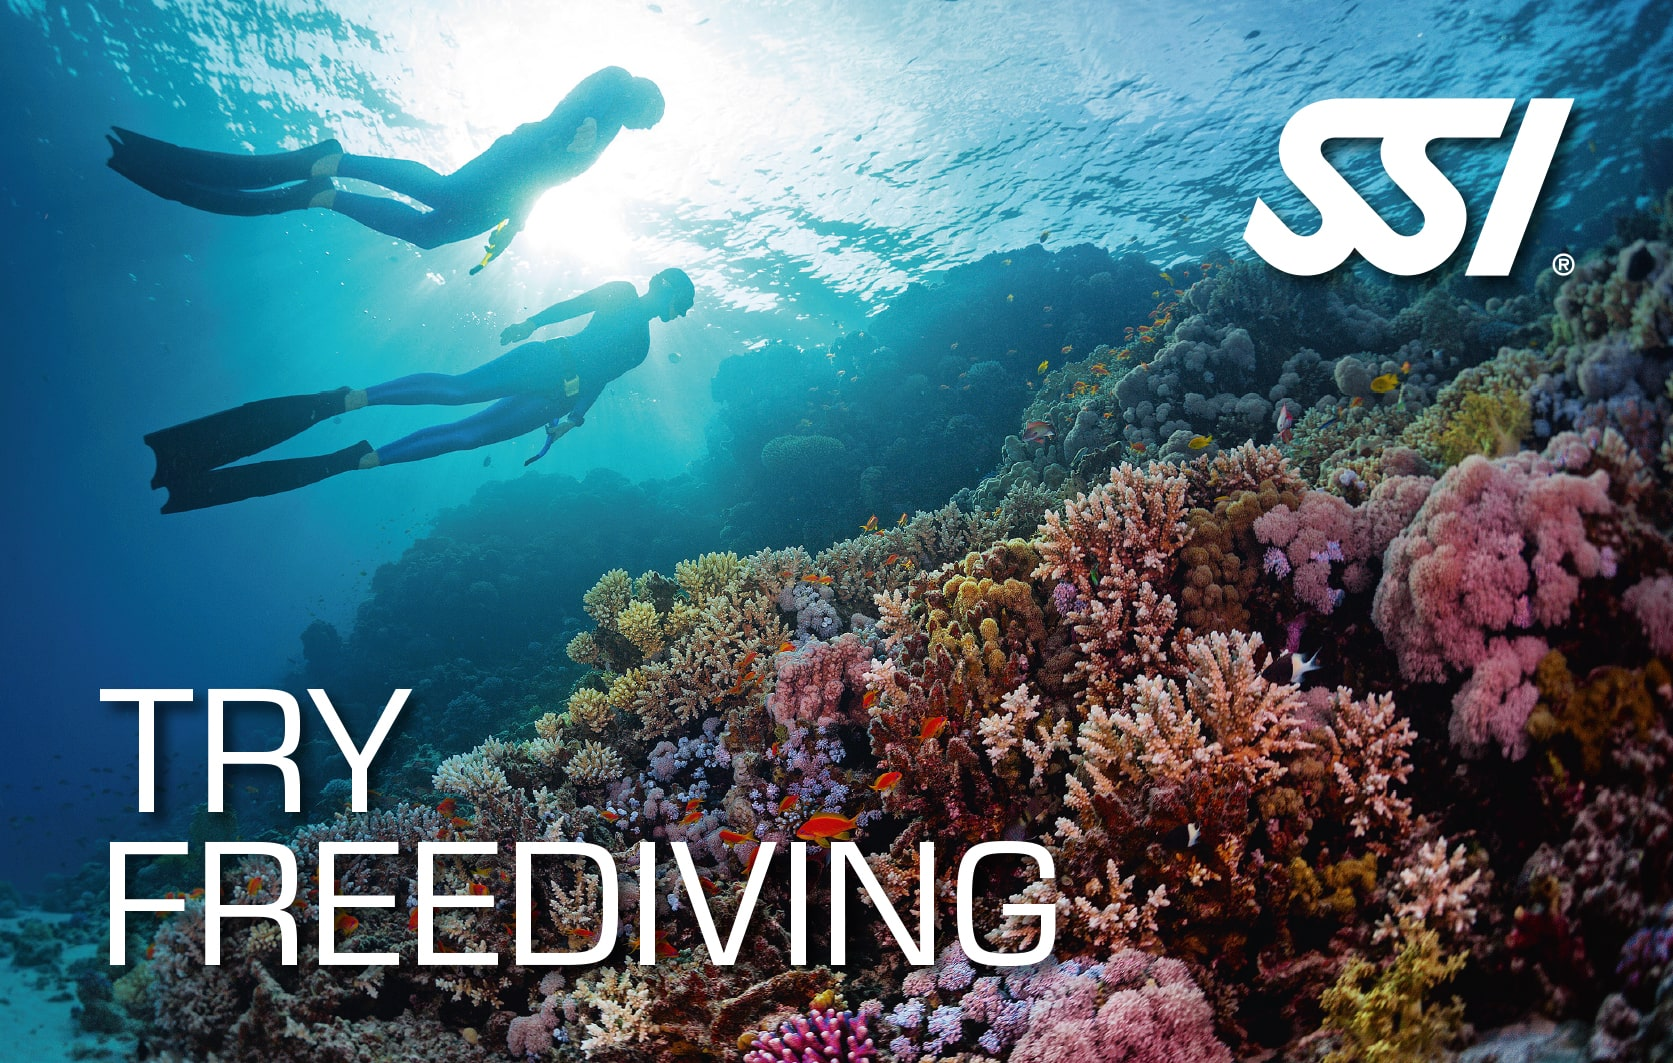 SSI Try Freediving certification card